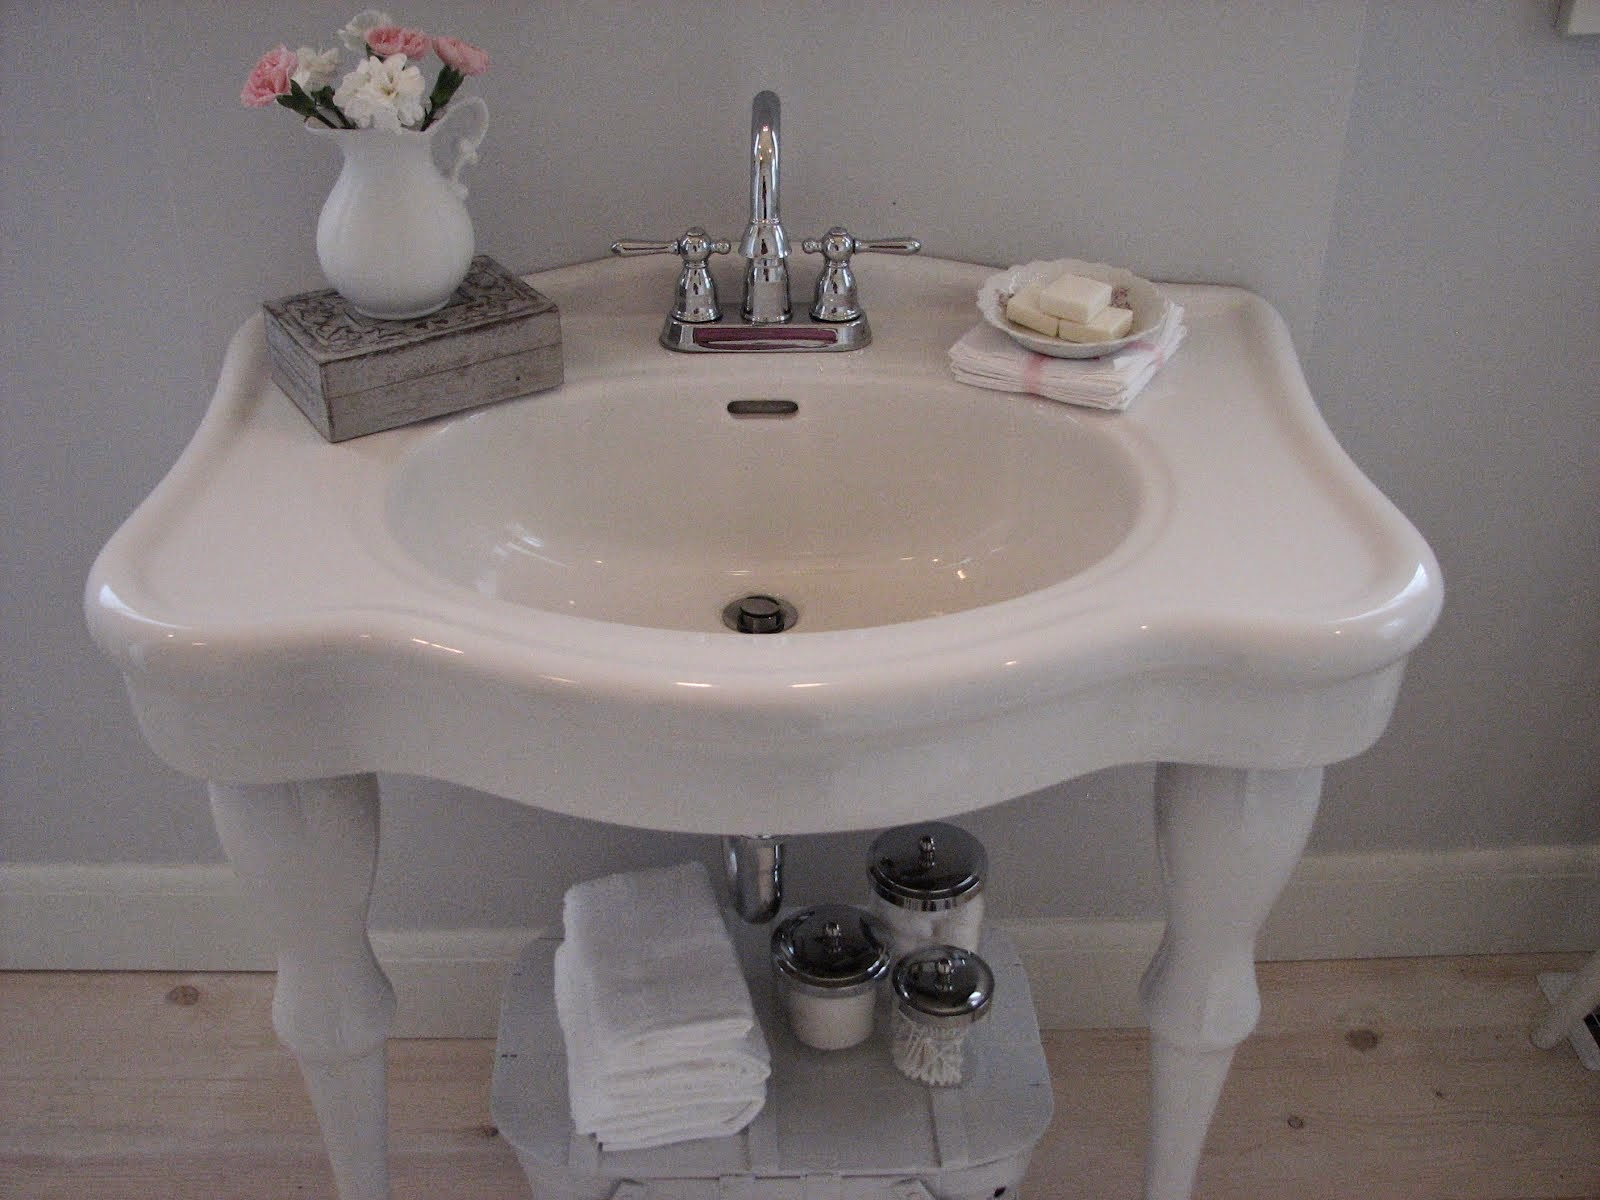 old fashioned bathroom sinks | My Web Value